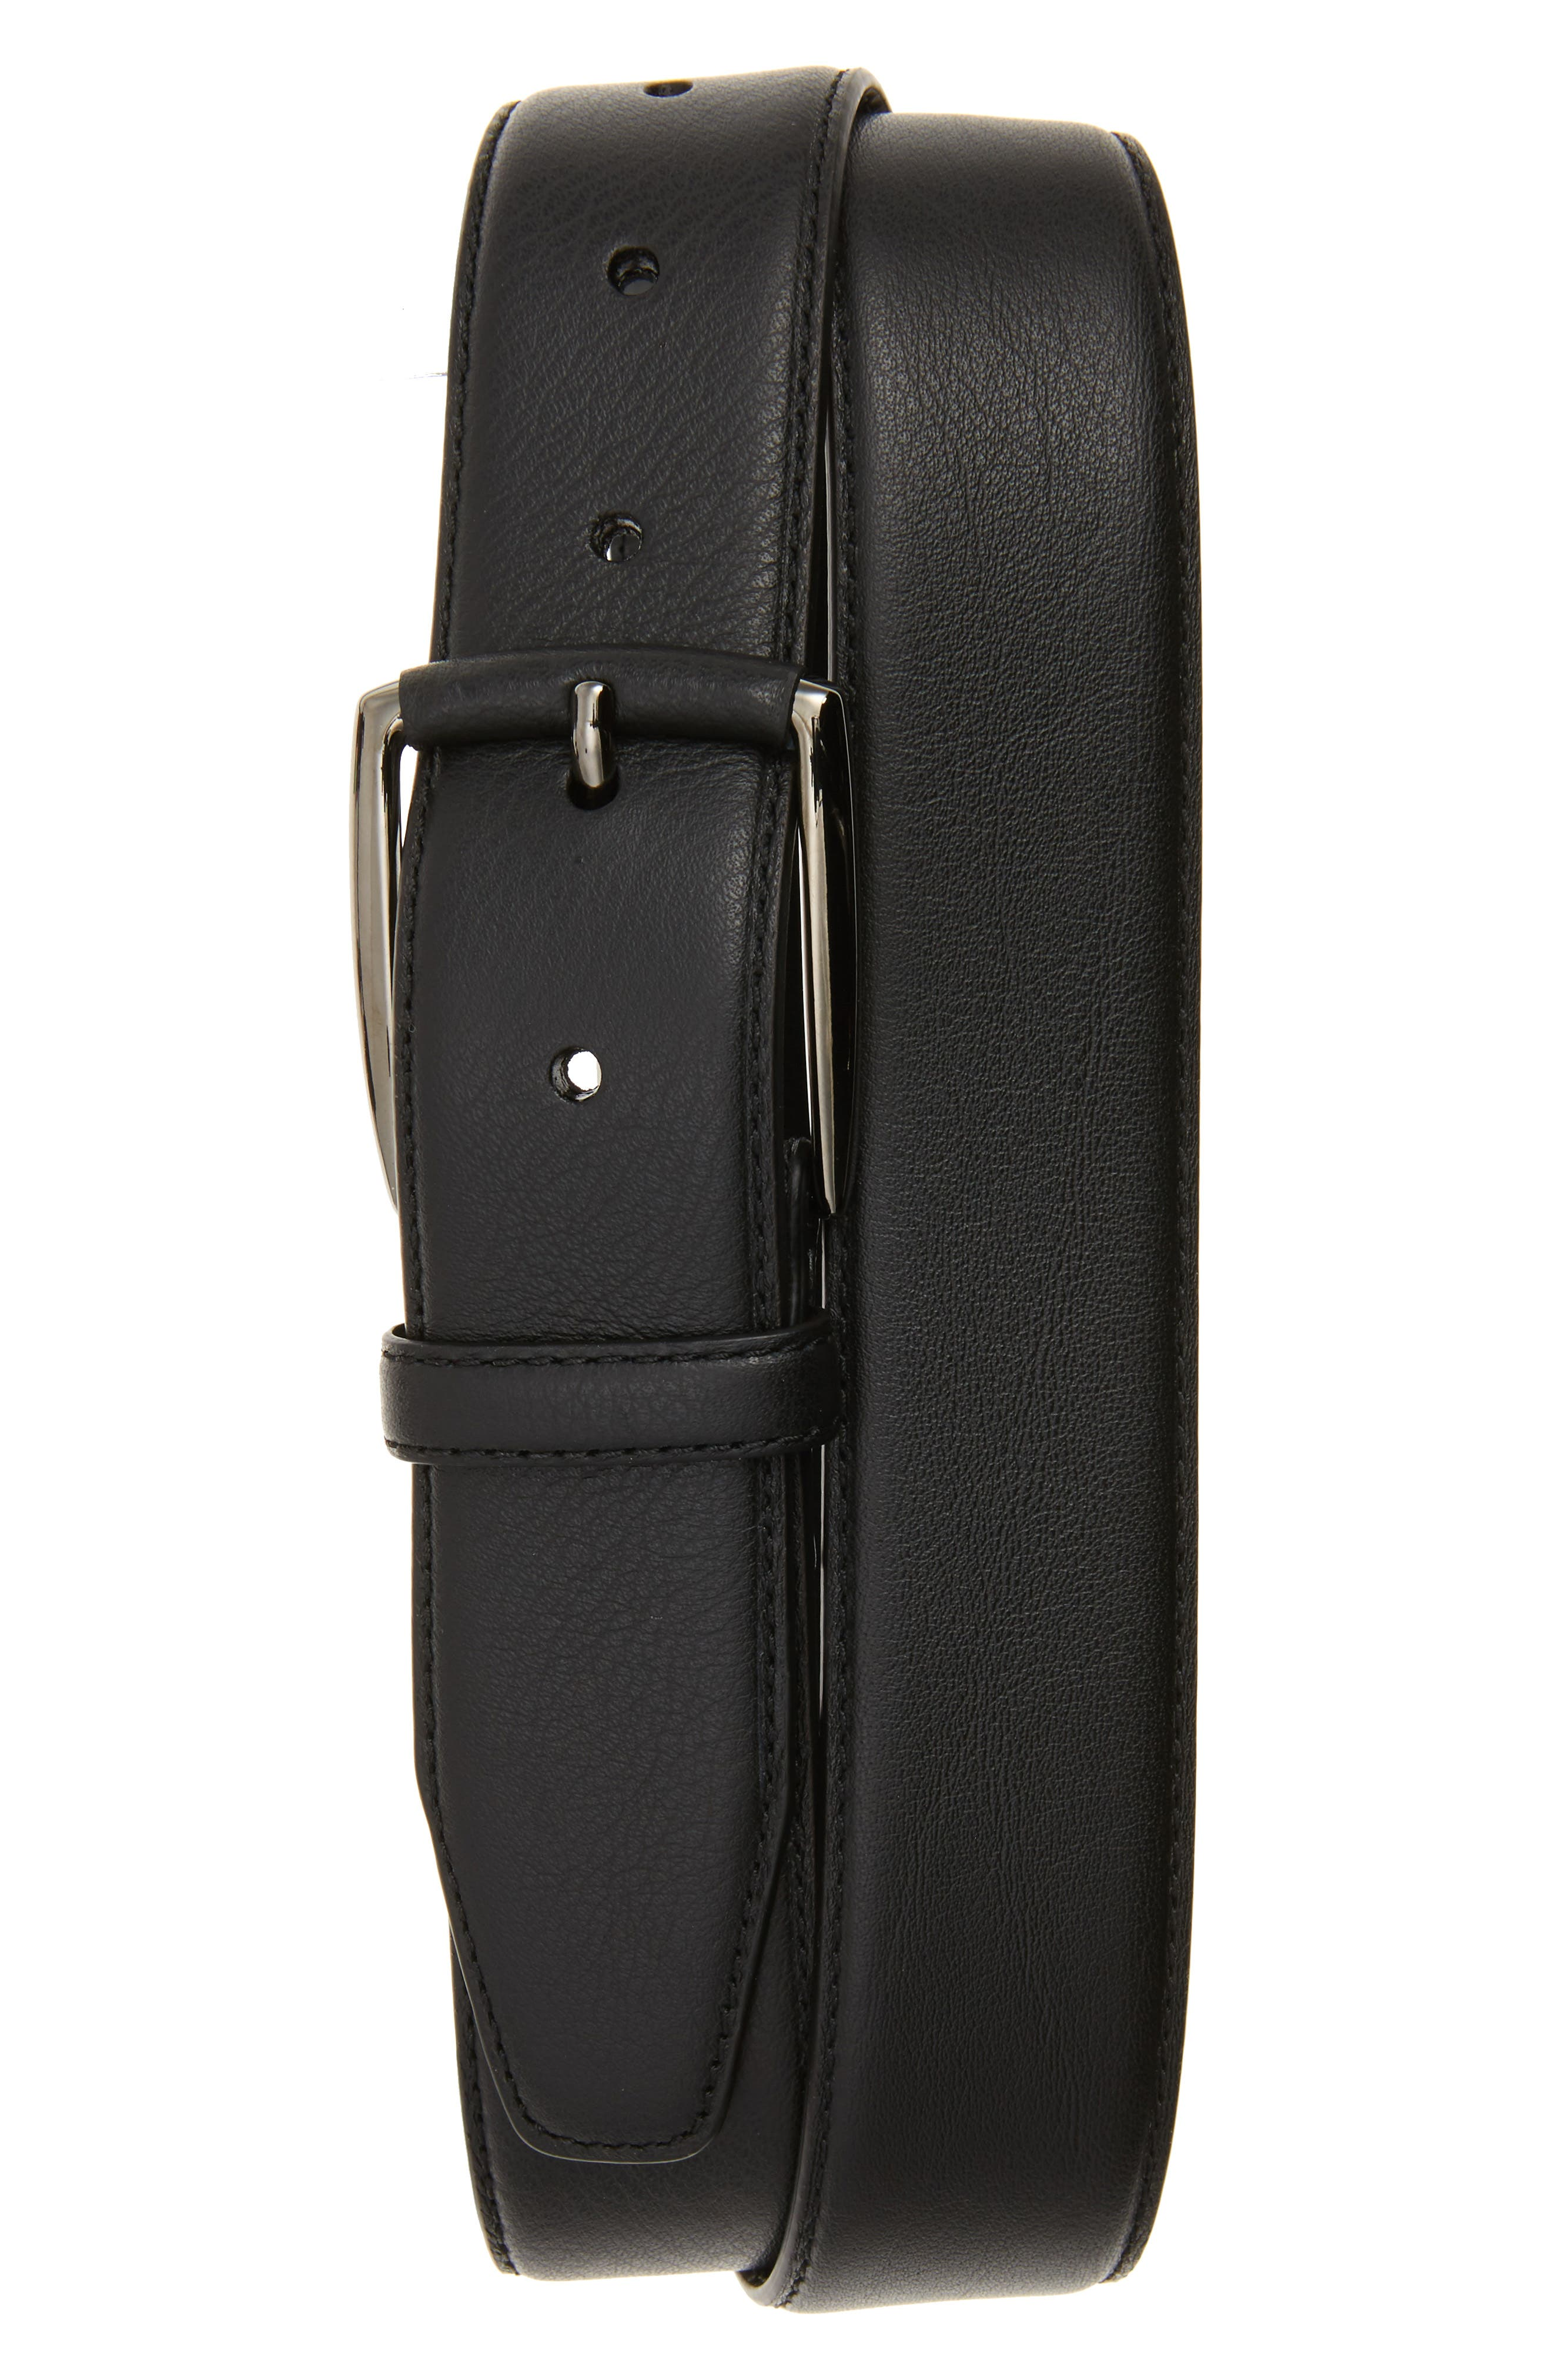 Monte Rosso Trieste Leather Belt